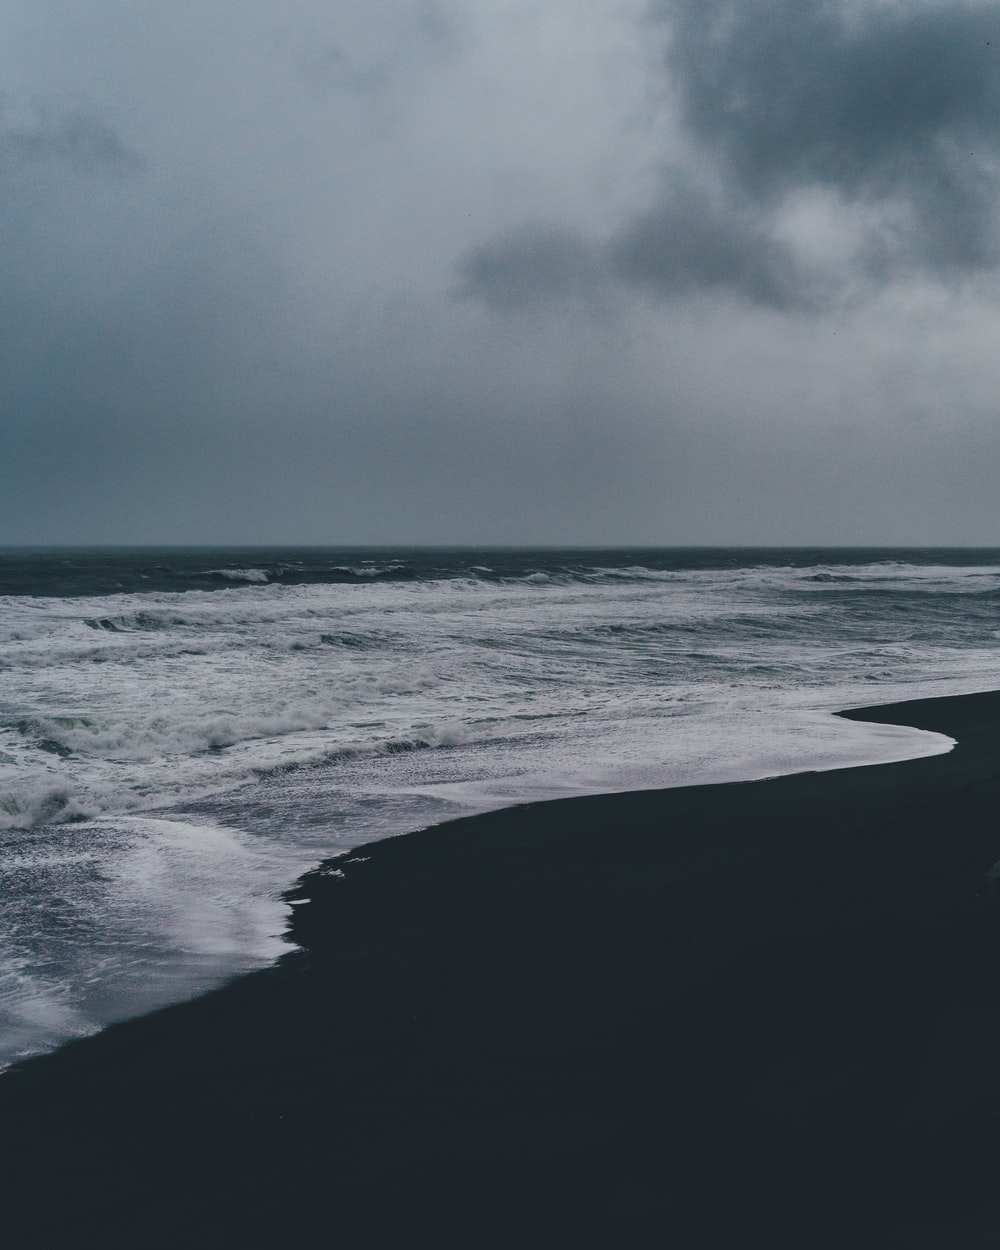 seashore with black sand under gray clouds